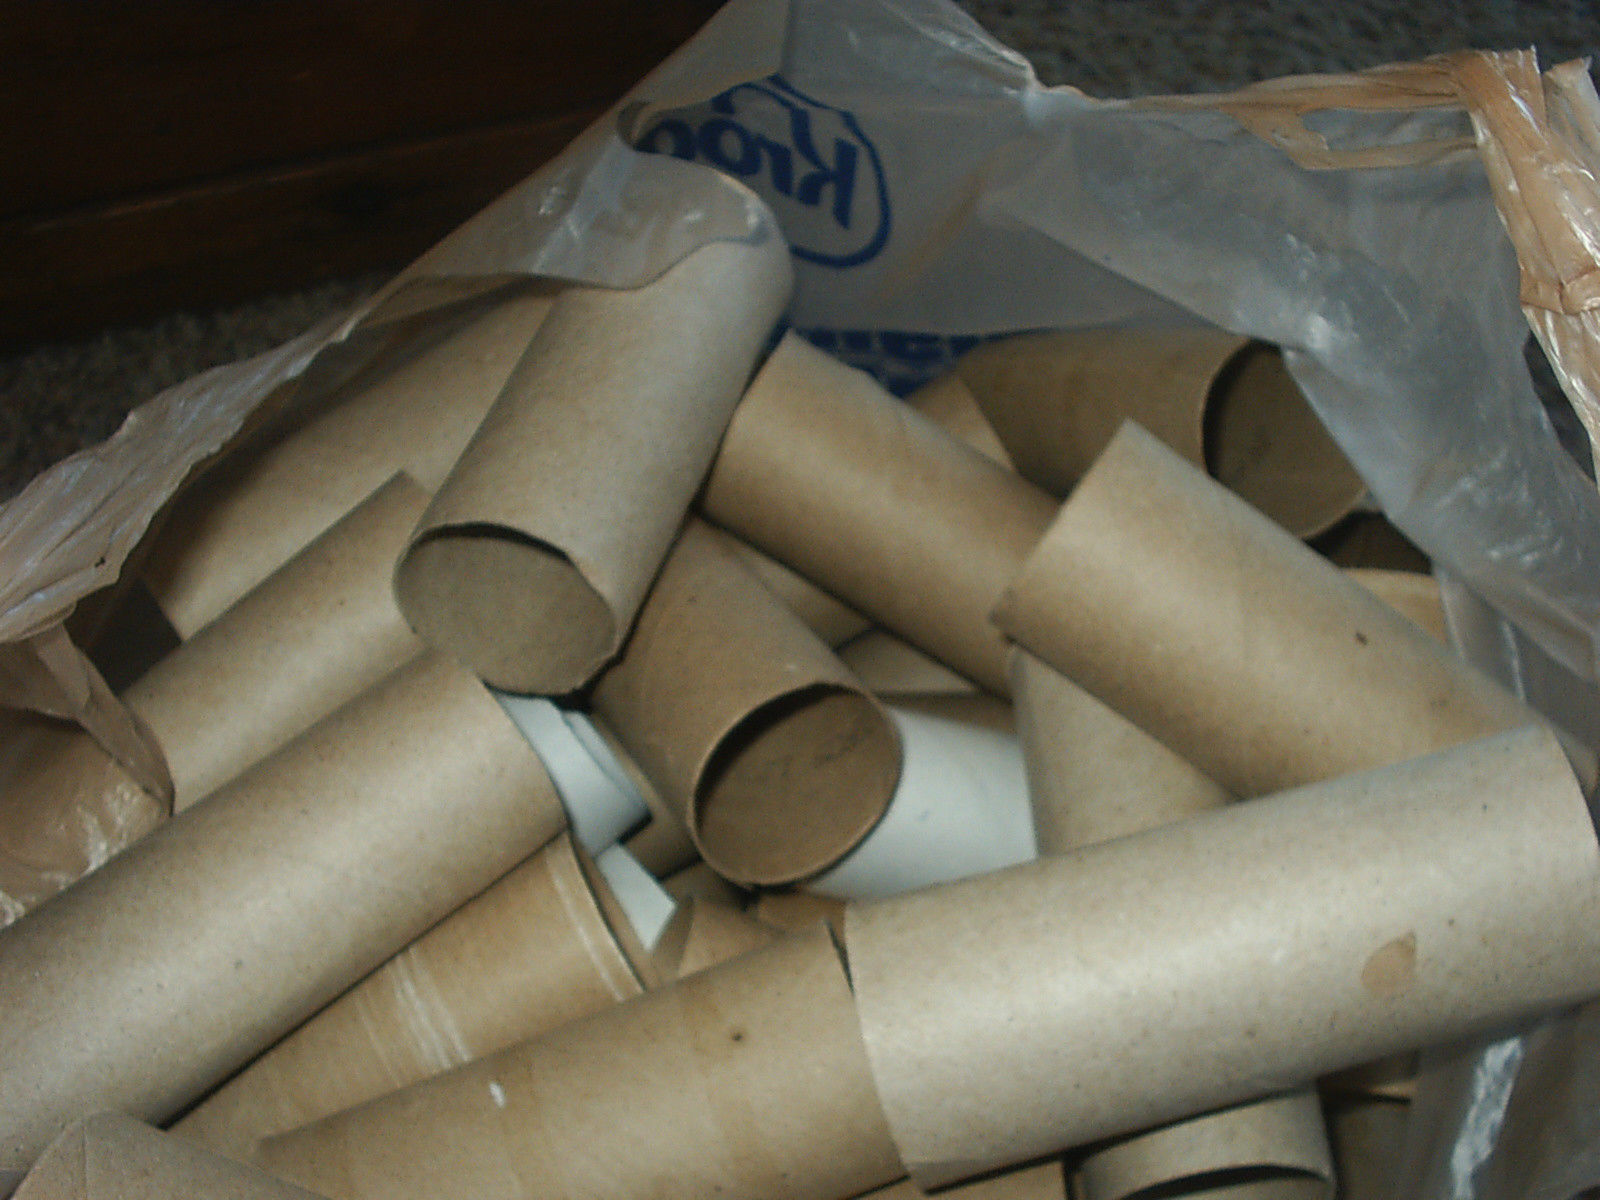 75 Toilet Paper Rolls Empty Clean Cardboard Tubes School Church Craft Projects